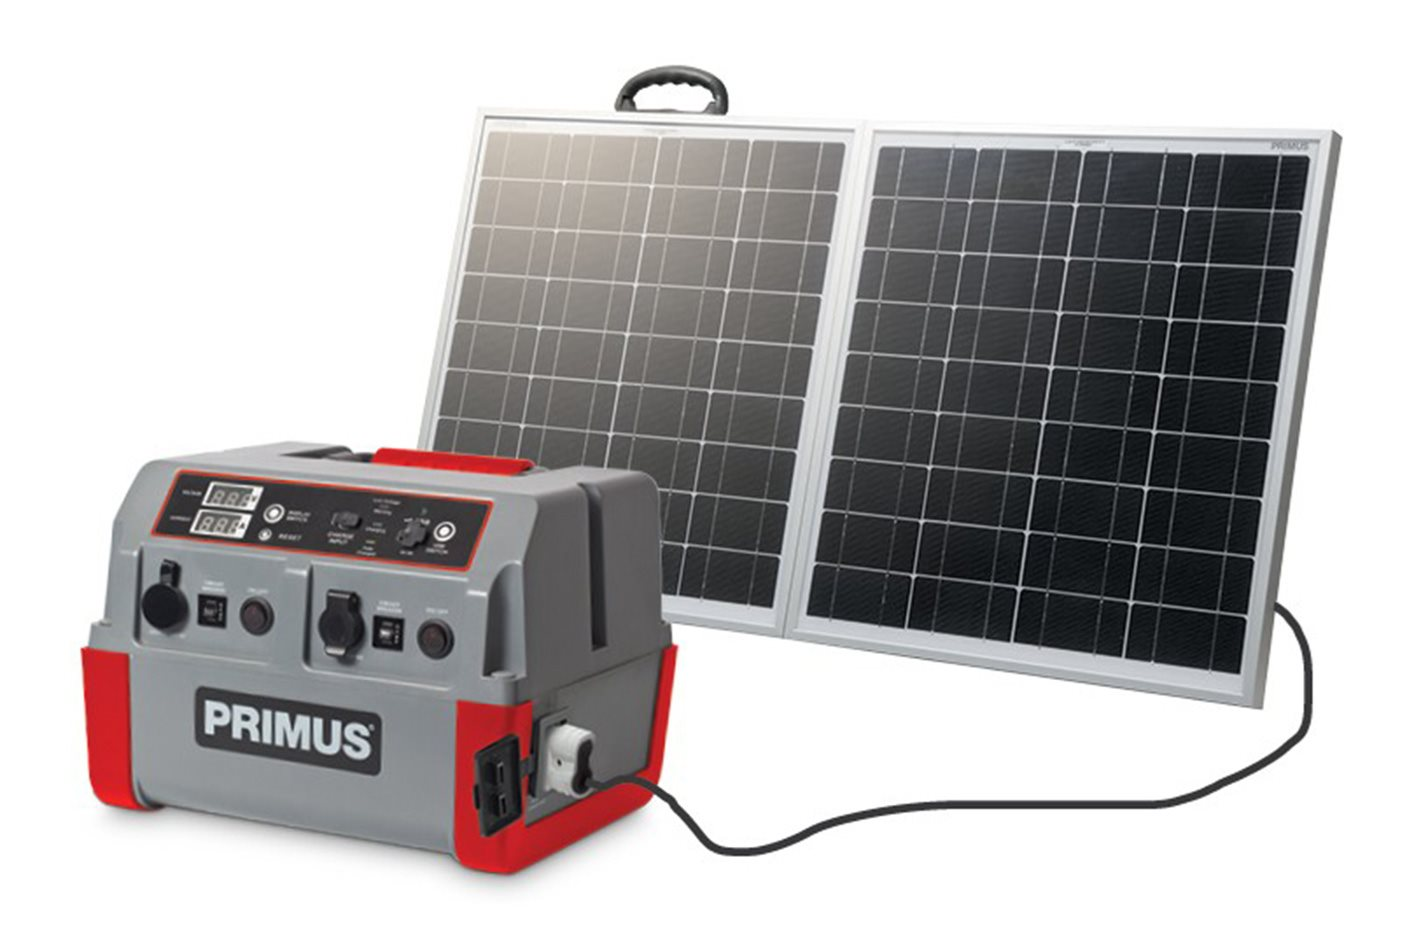 Primus-Portable-Power-Pack-44Ah-solar-panel.jpg